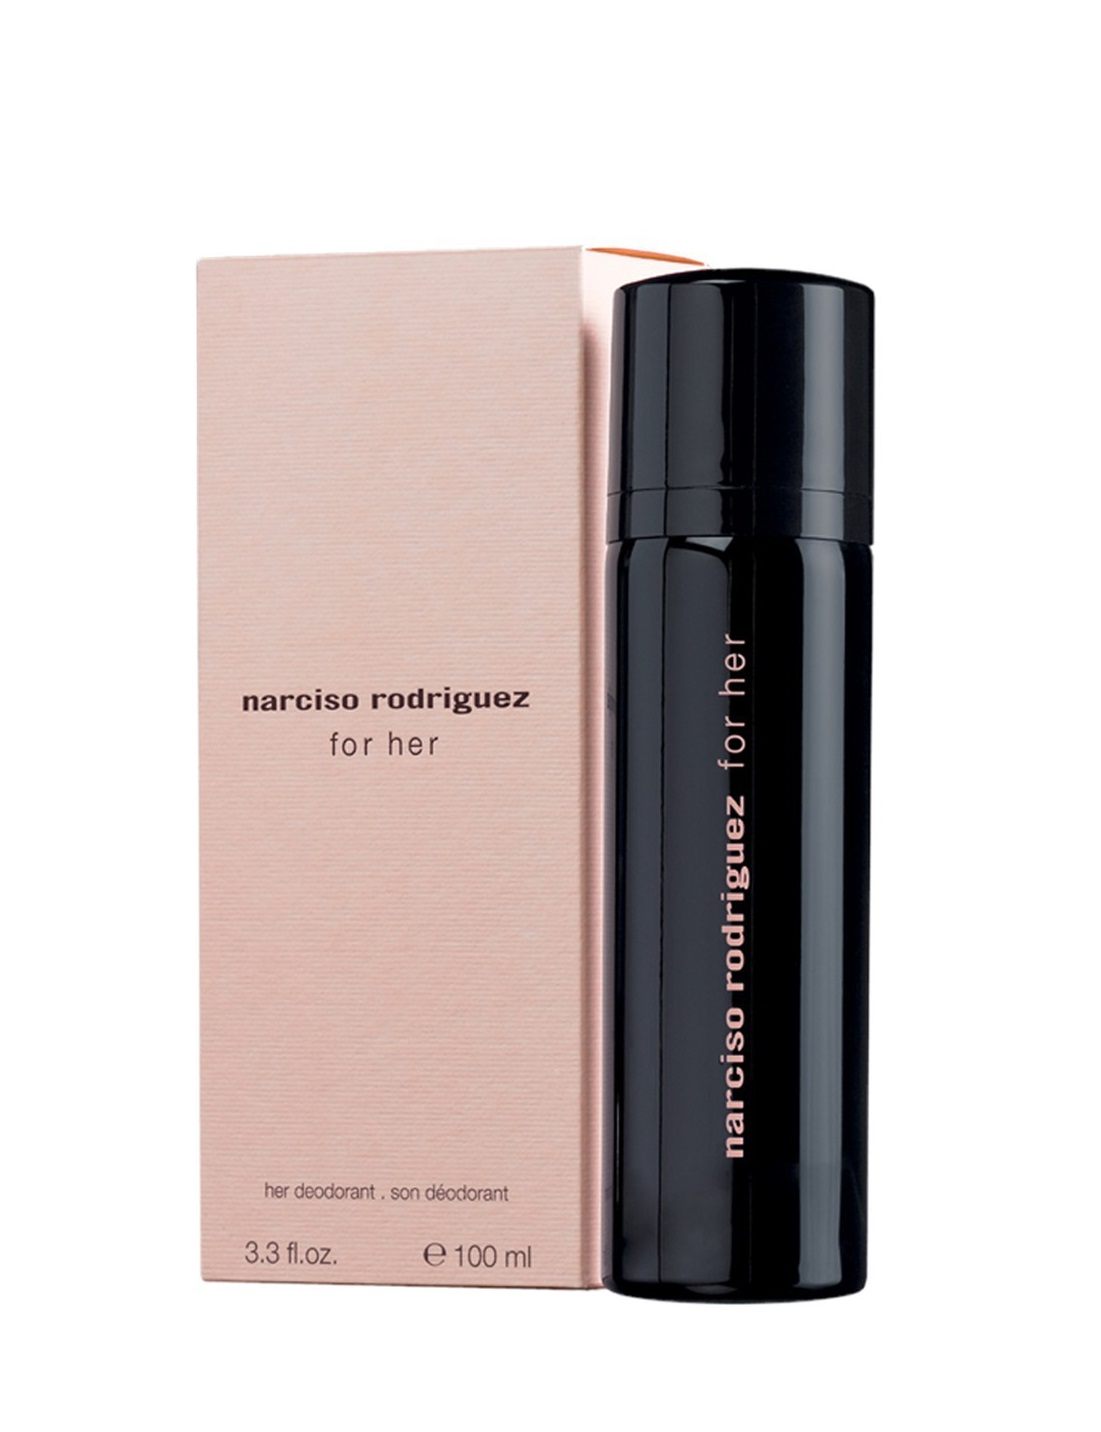 Narciso Rodriguez For Her deodorante spray 100 ml